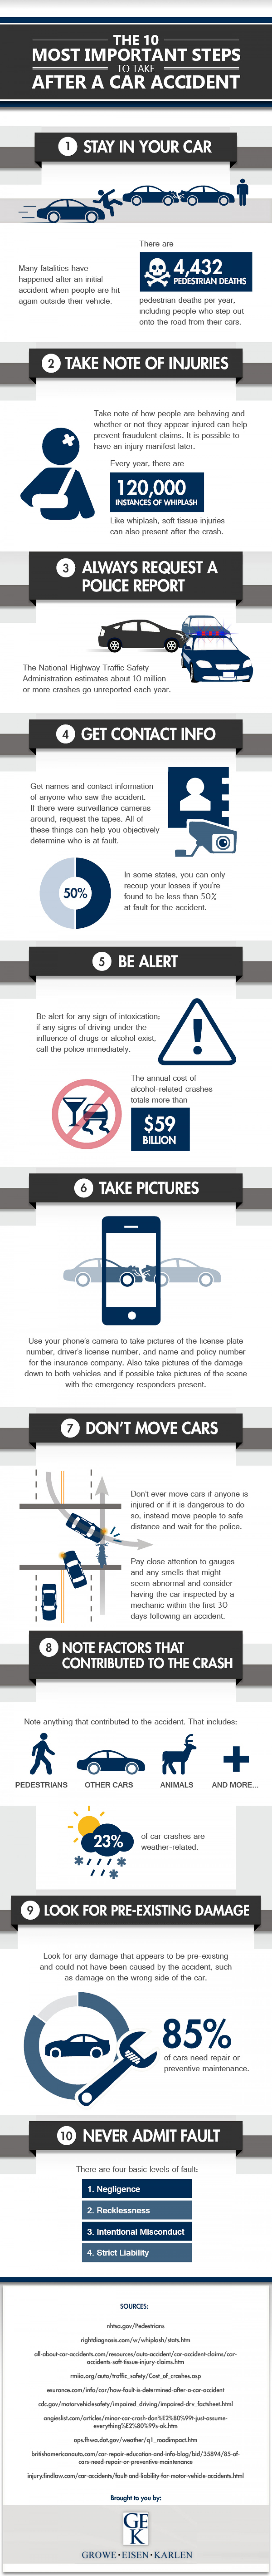 10 Important Steps after a Car Accident Infographic